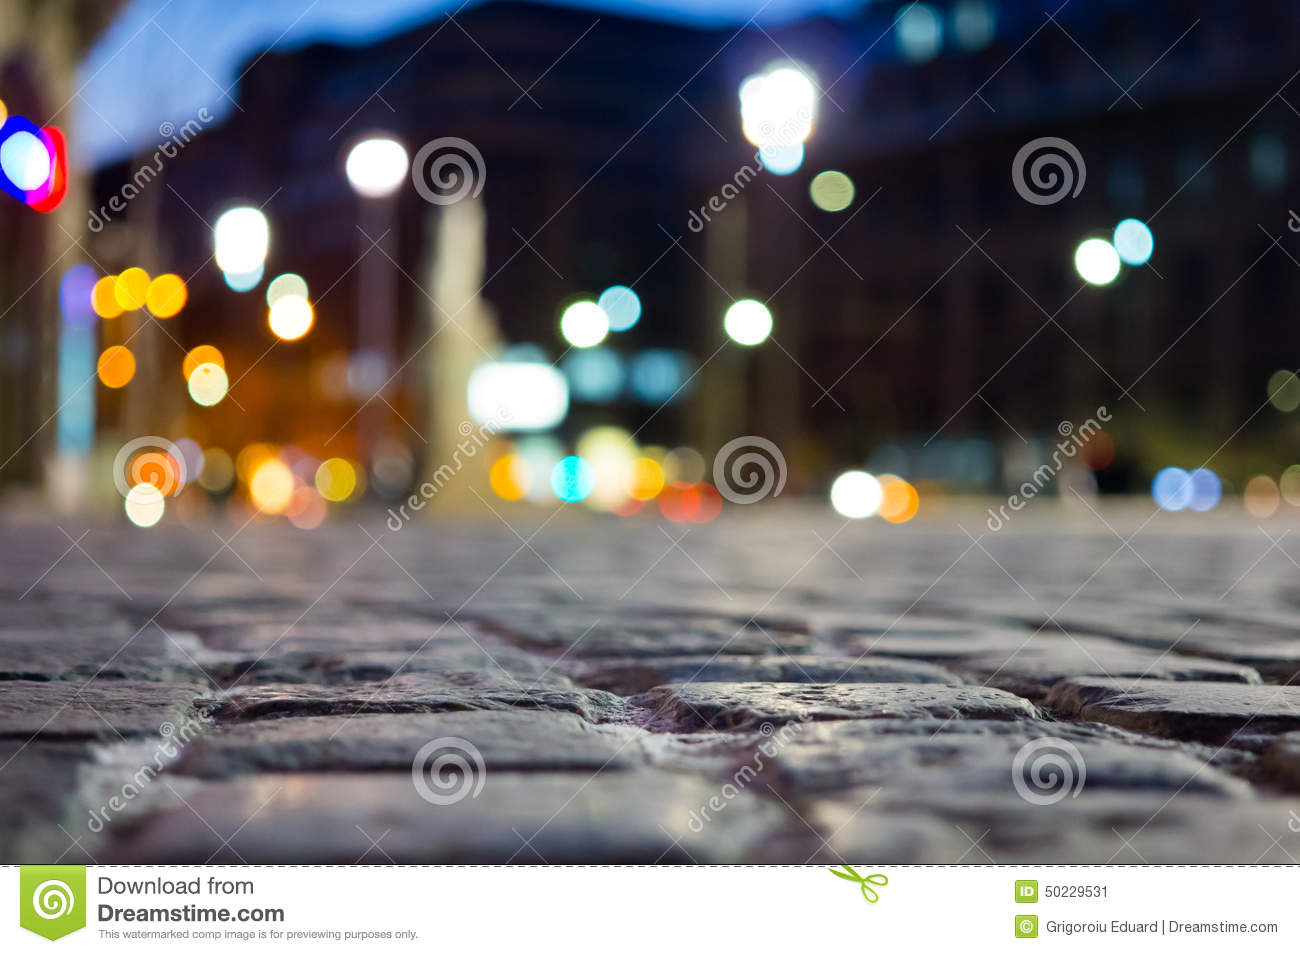 Pavement and blurred city light during night time